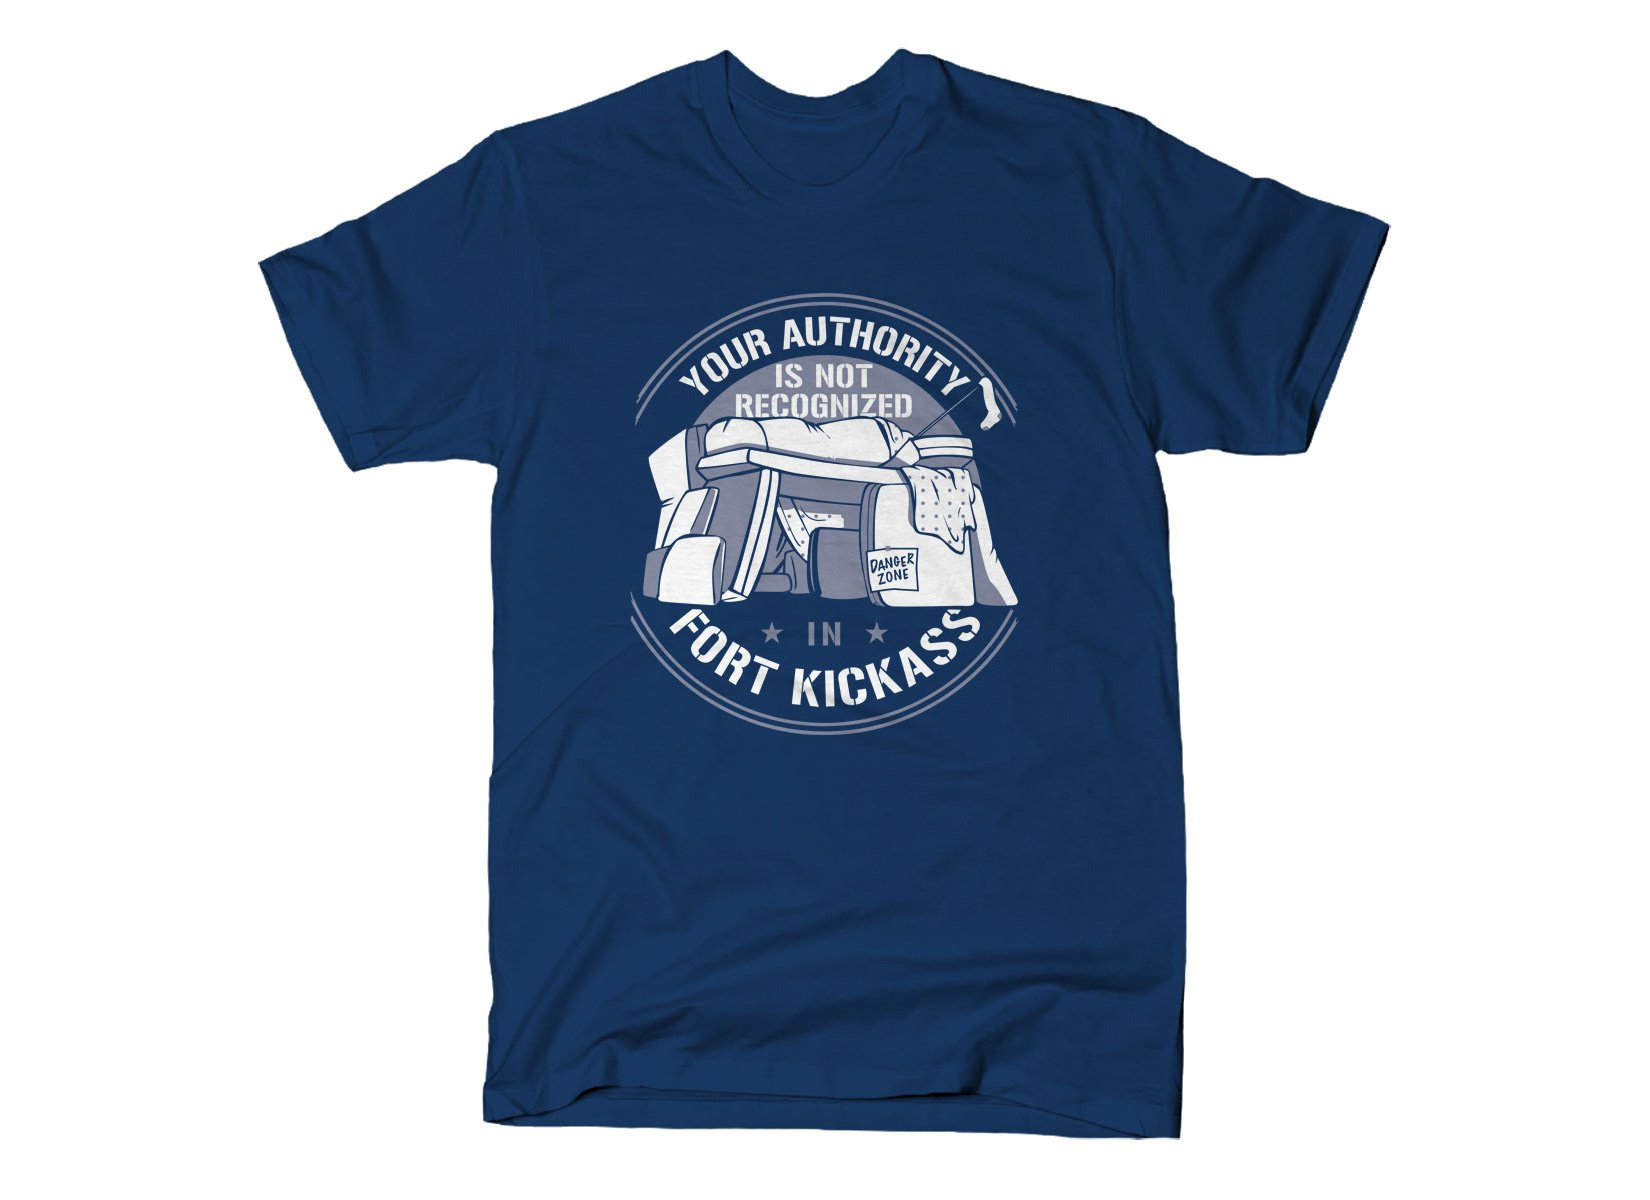 Your Authority Is Not Recognized In Fort Kickass on Mens T-Shirt